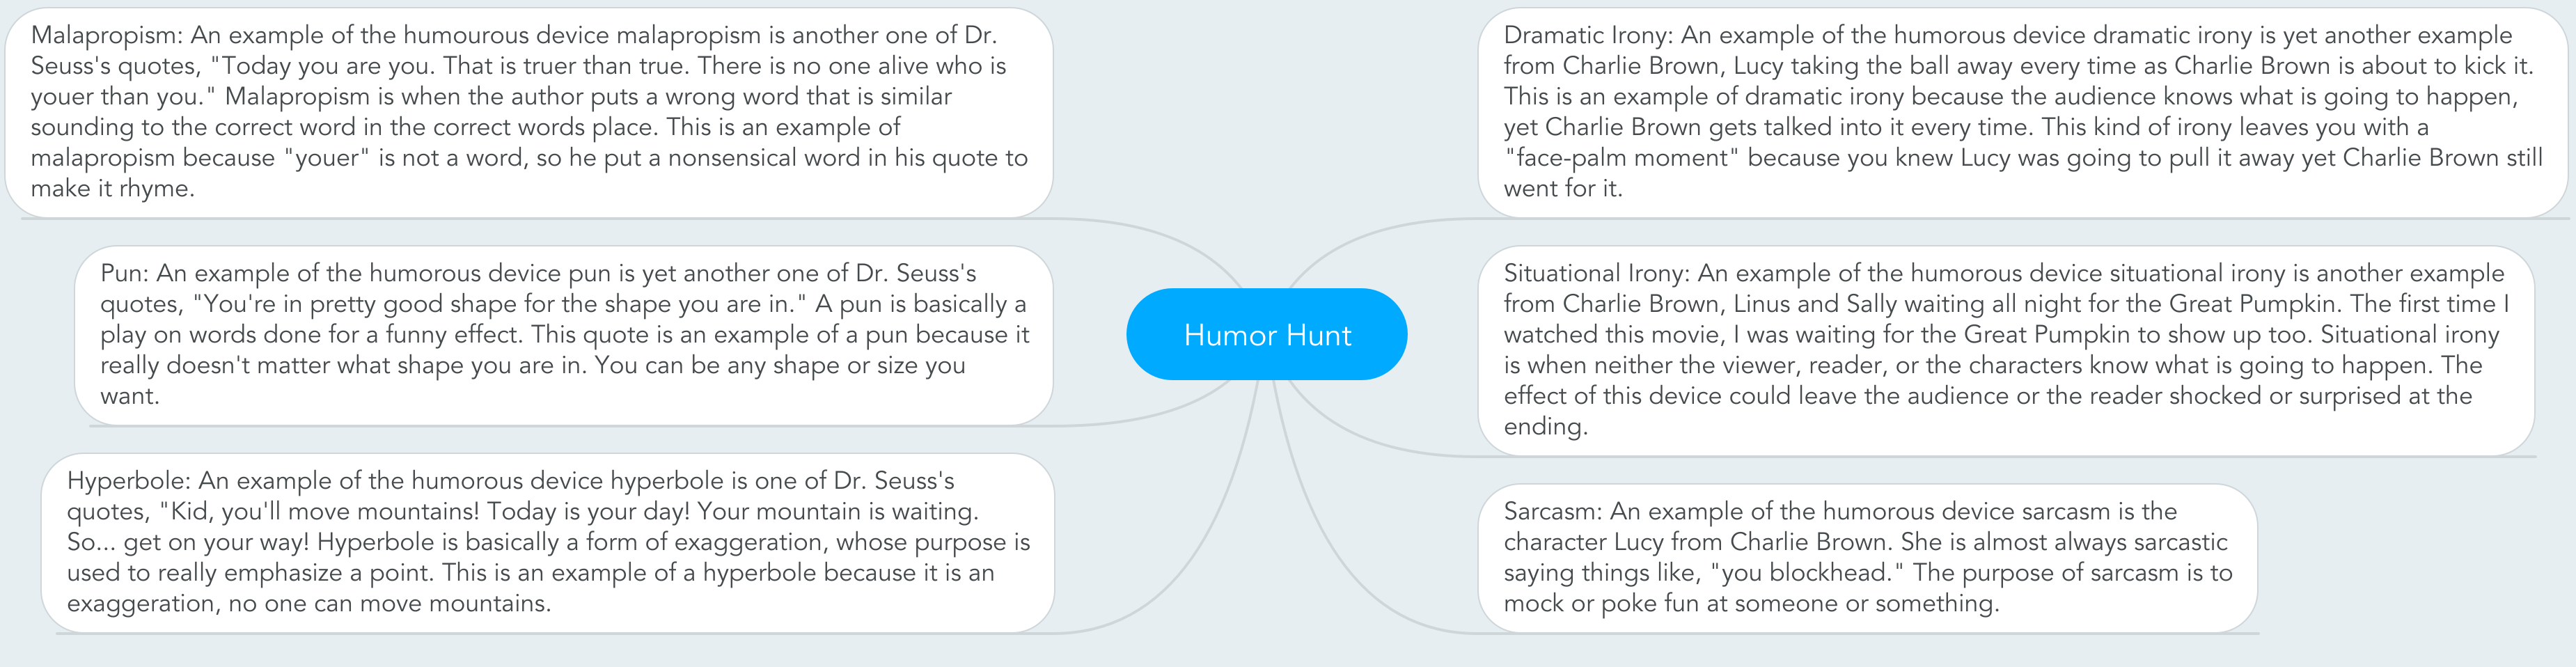 Exaggeration humor examples